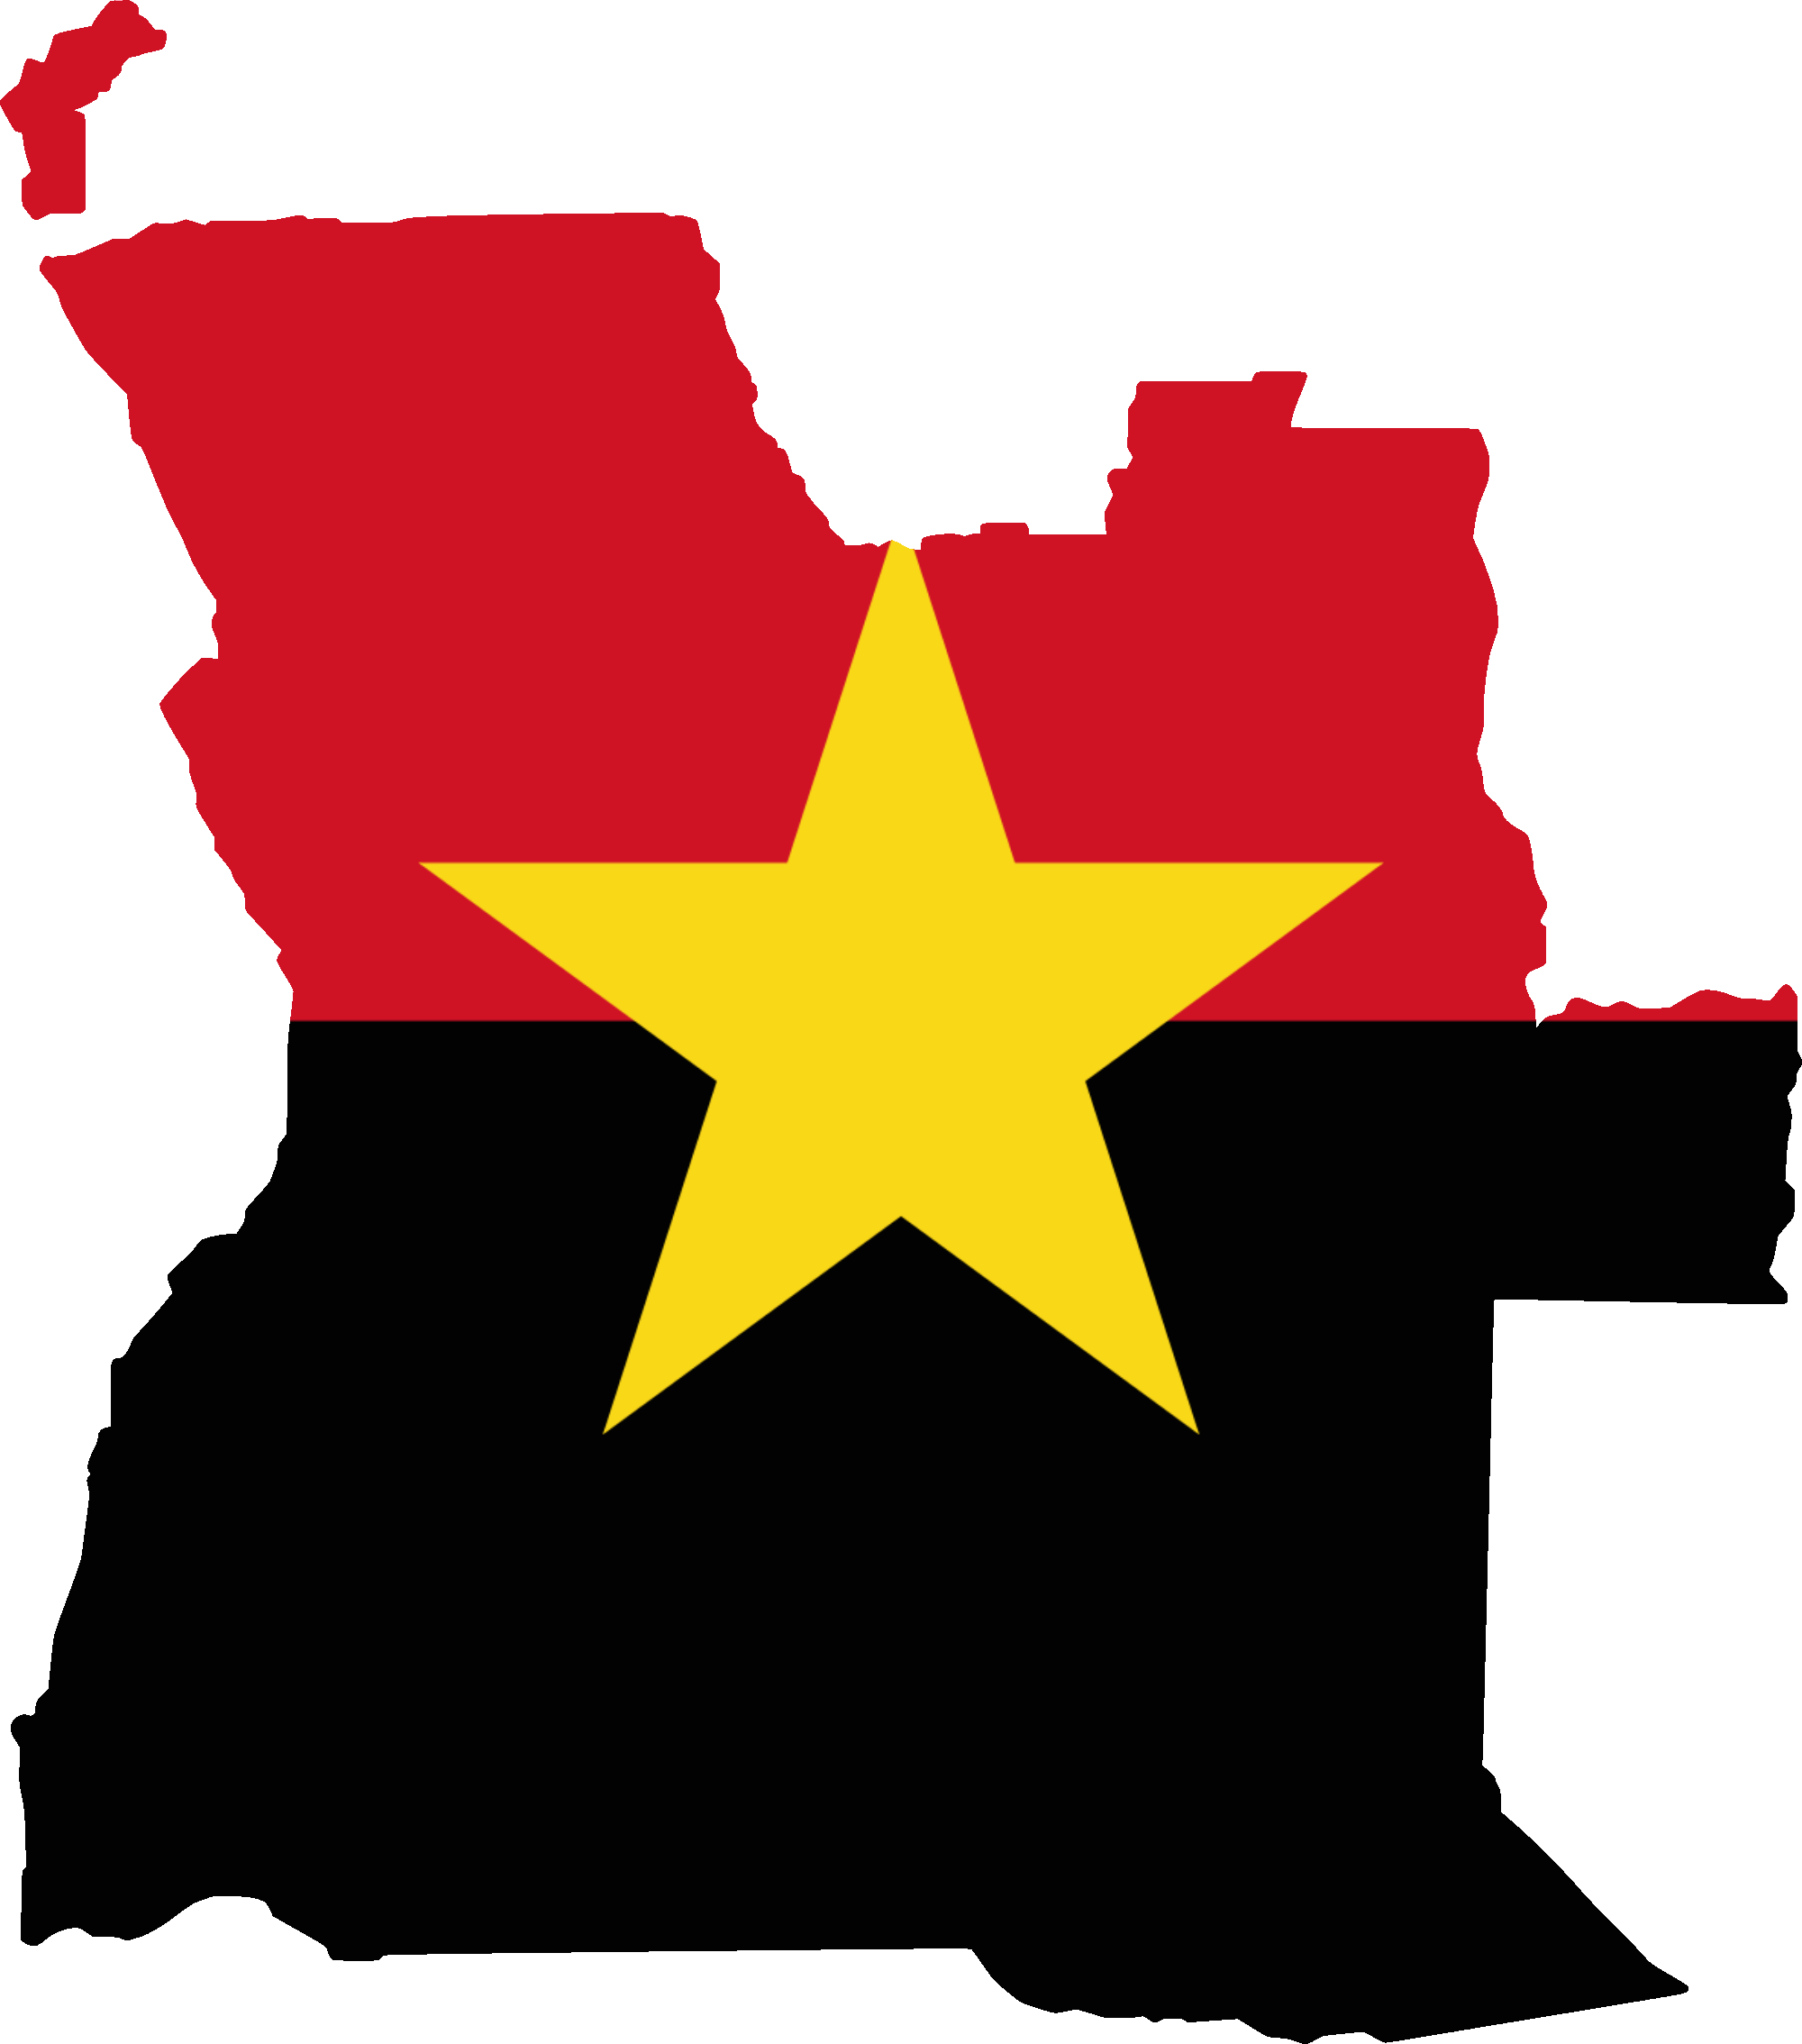 Africa shape png. File flag map of